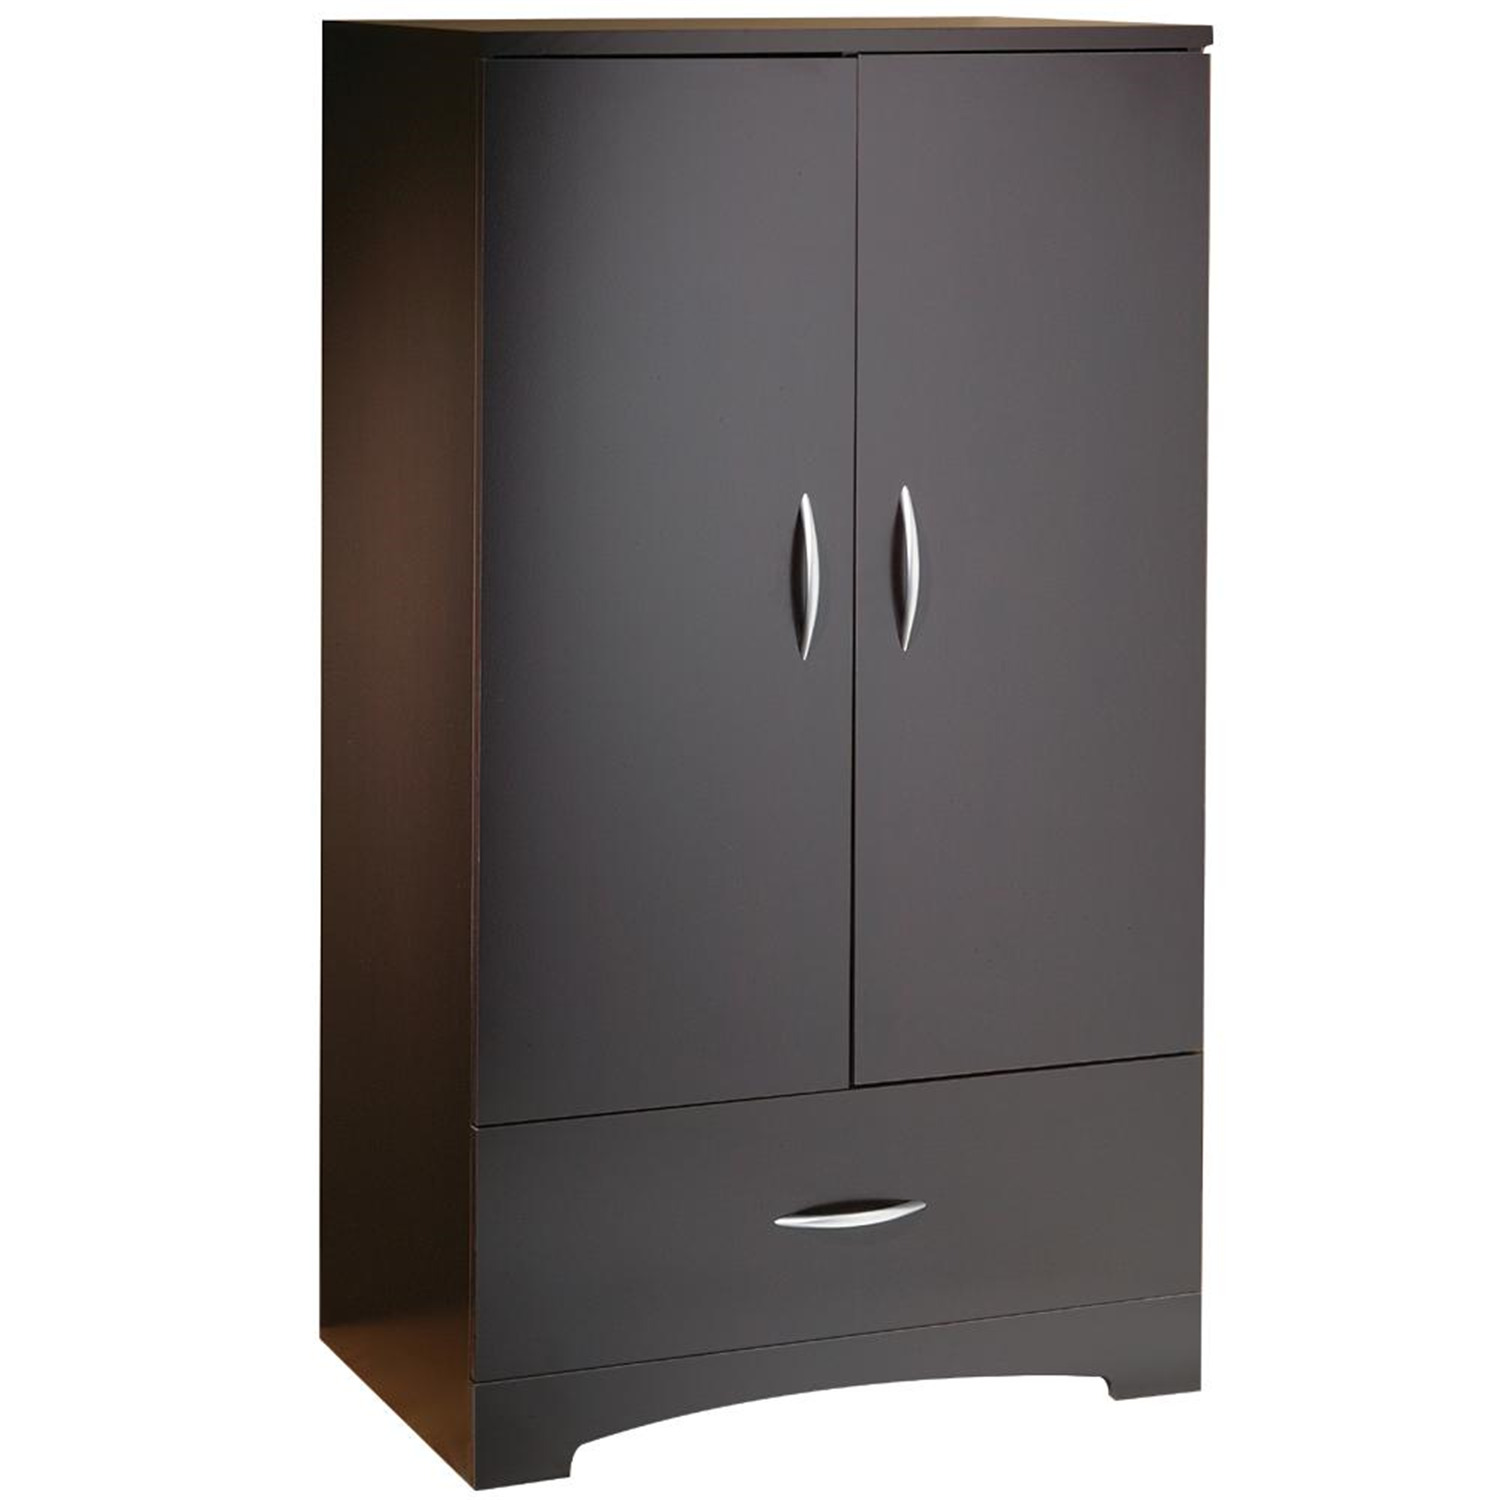 Large Bay Doors : South shore back bay door chest by oj commerce